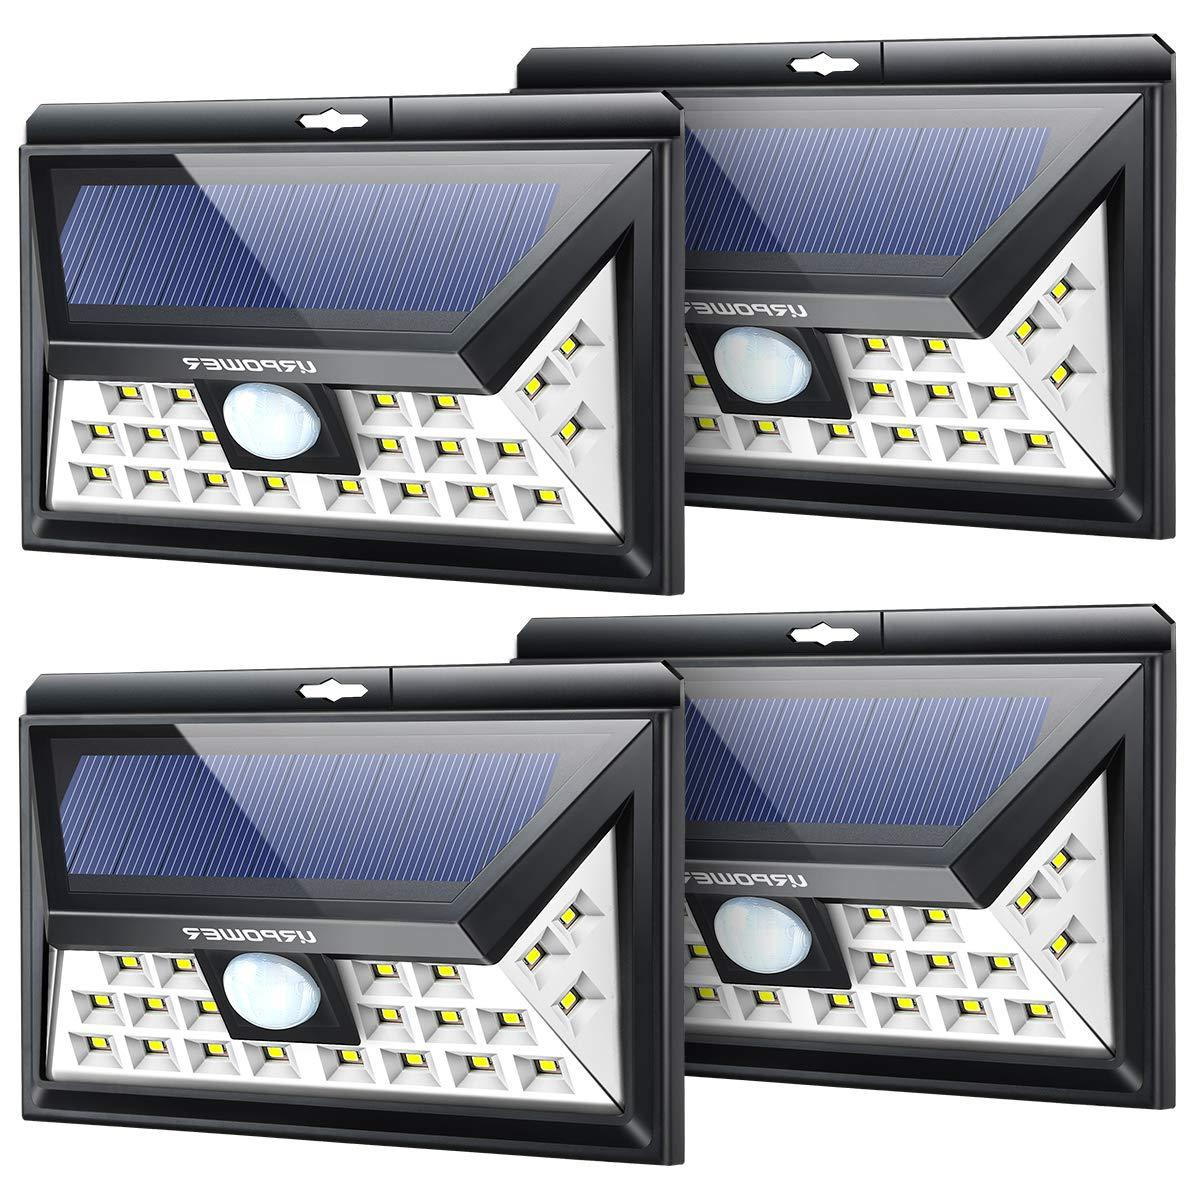 URPOWER Solar Lights Outdoor, Upgraded 3 Modes Wide Angle So